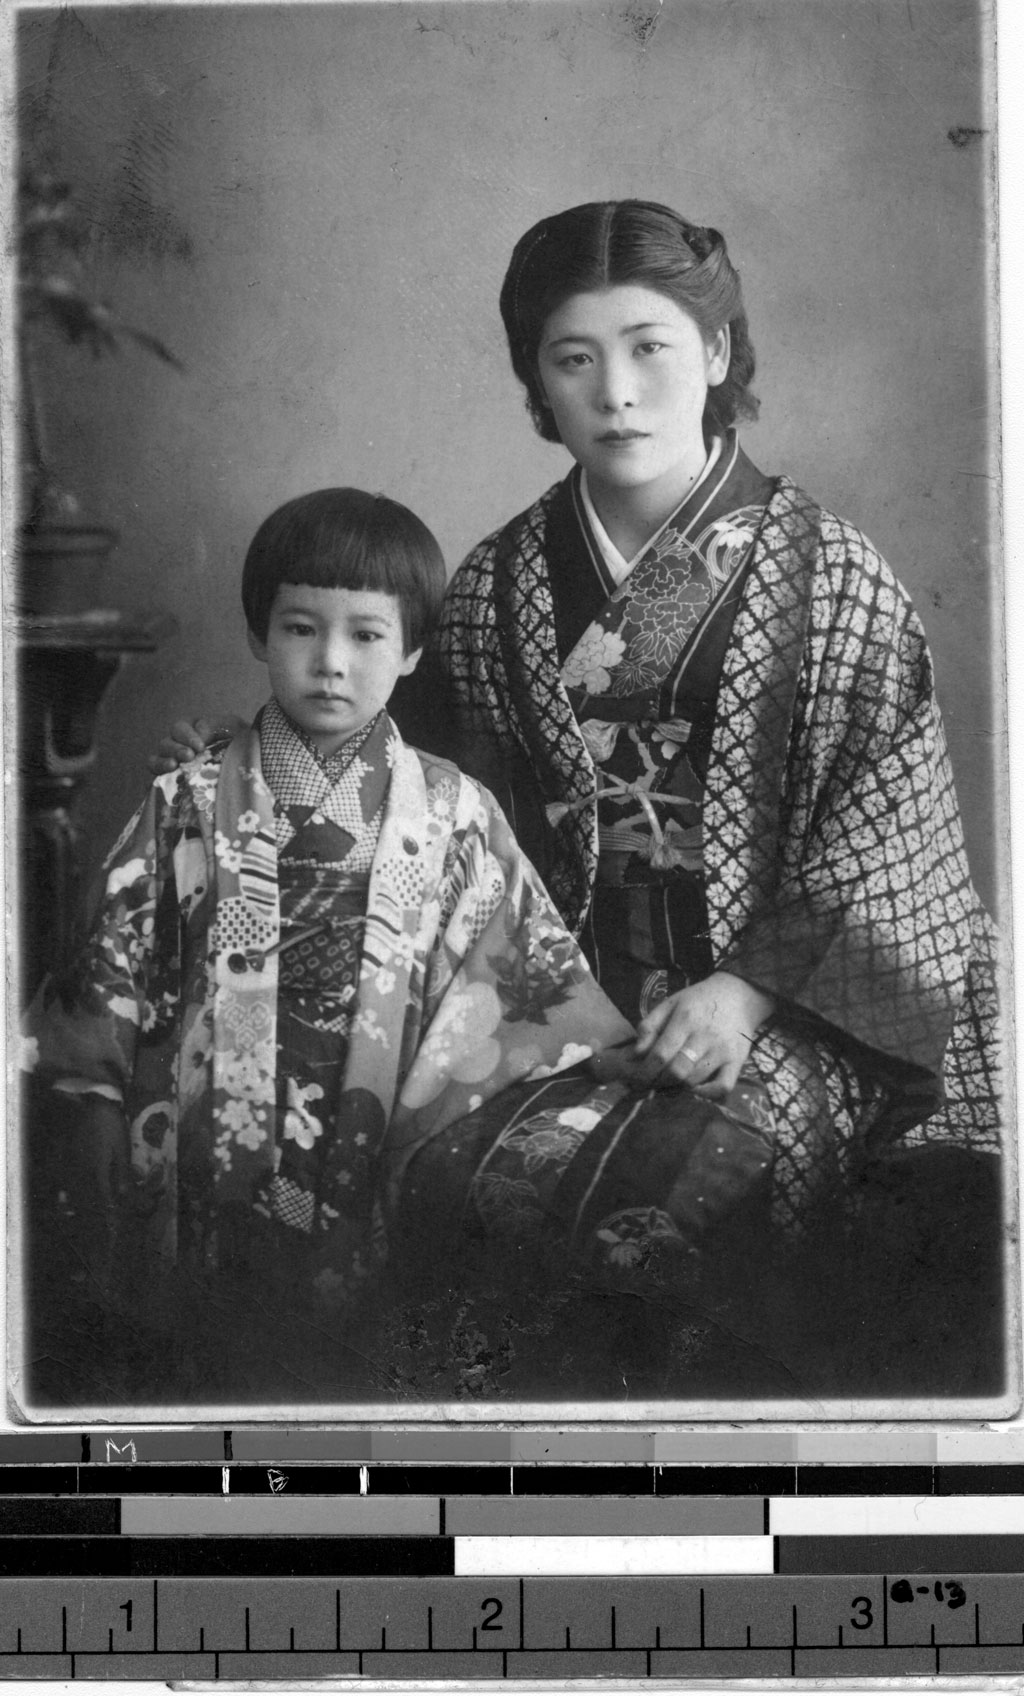 A professional portrait of a Japanese American woman and her child | Image Courtesy of the USC Digital Archives.